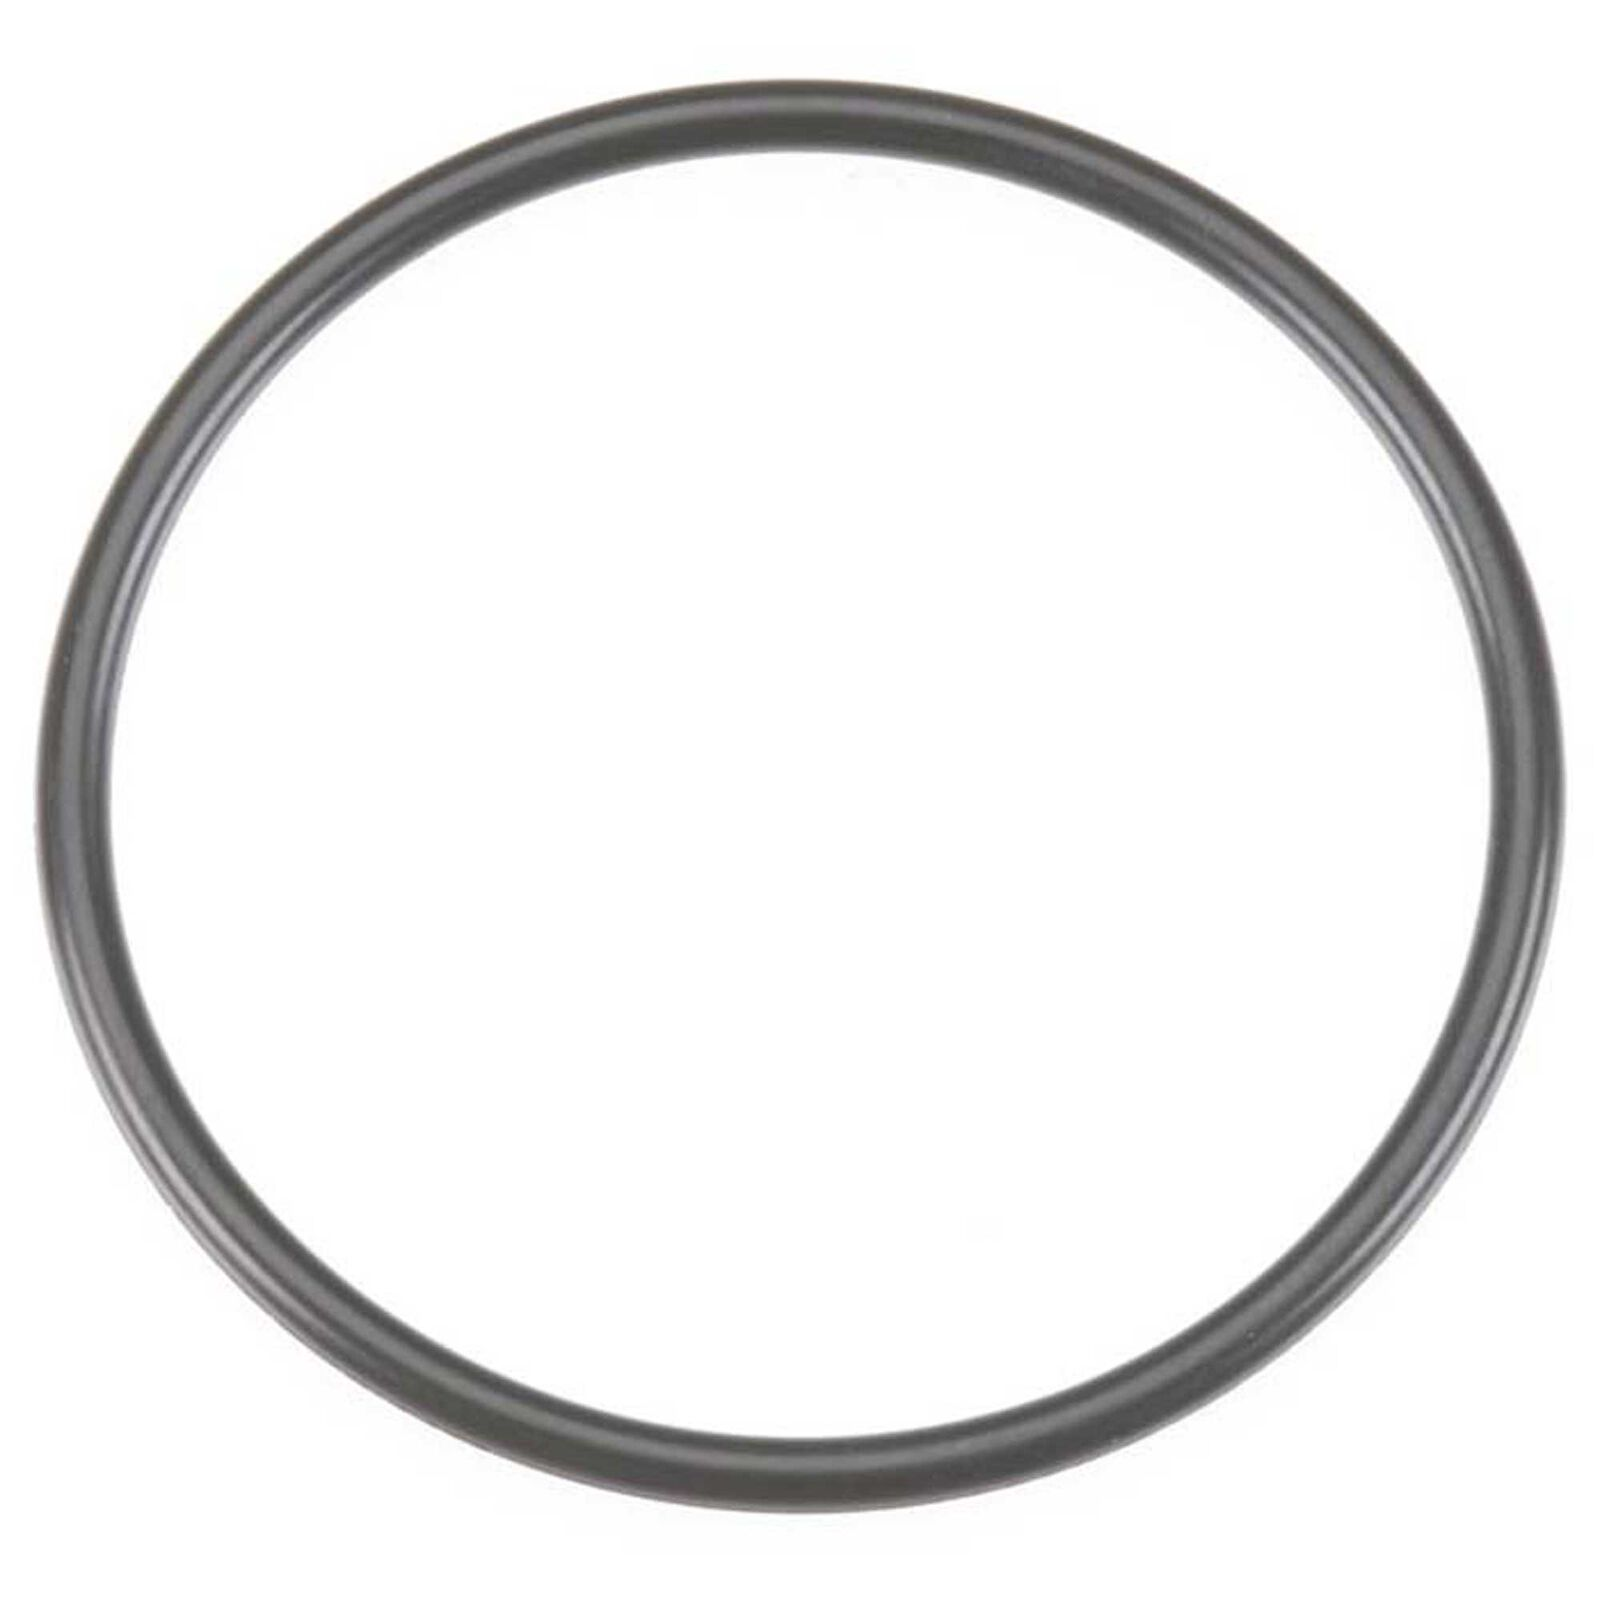 Cover Plate Gasket: 75AX